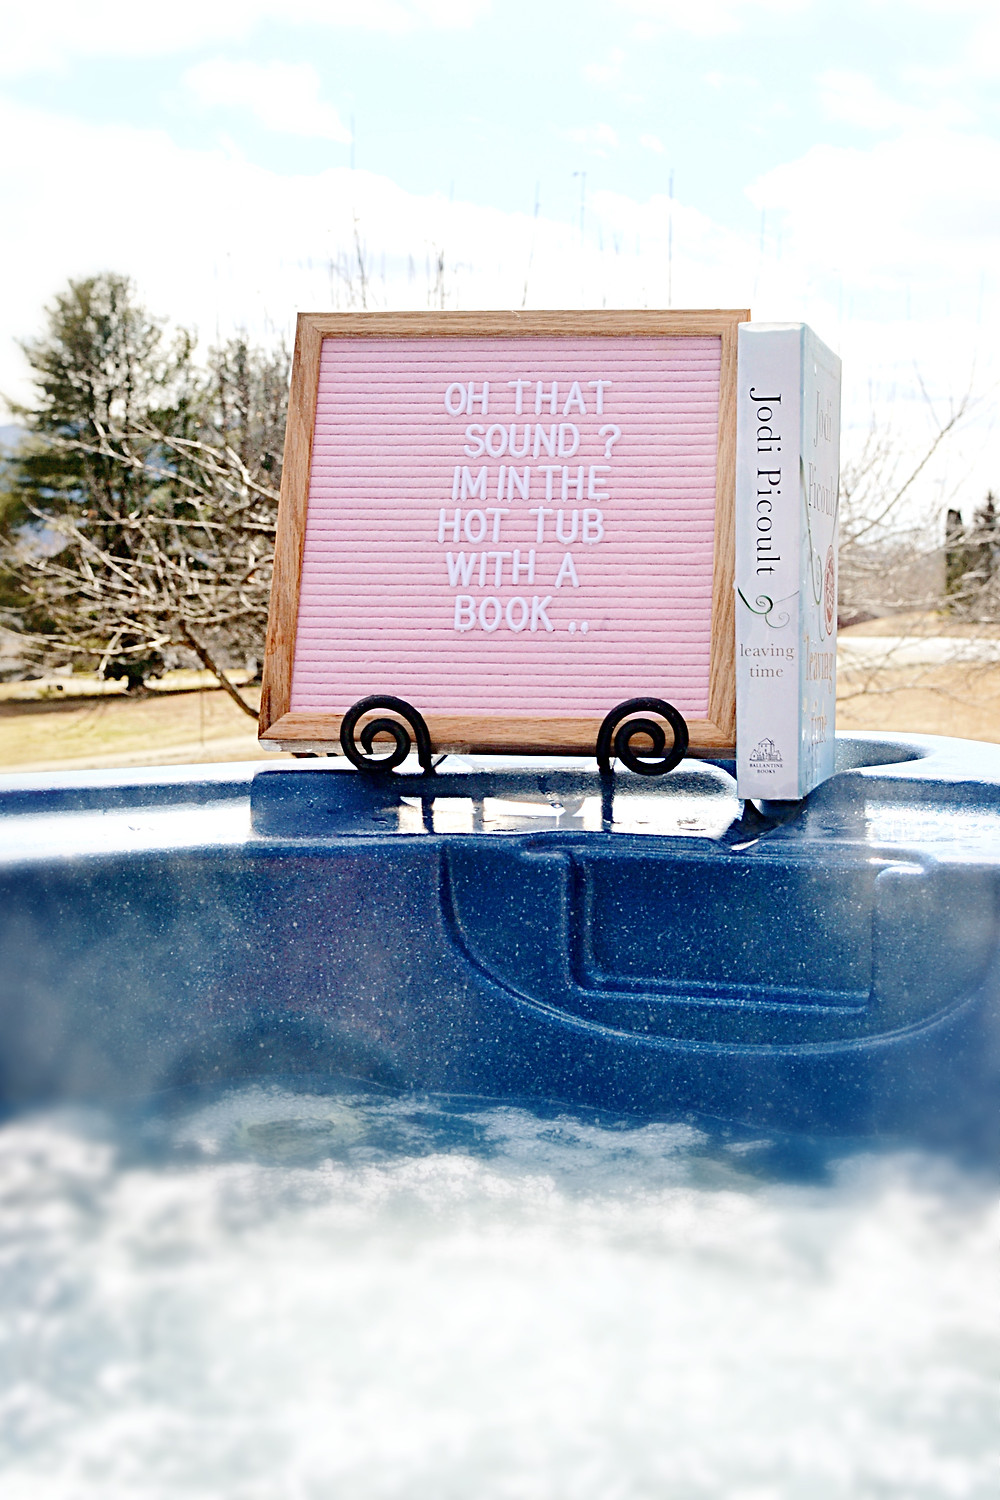 Pink felt letter board displayed on a hot tub with hardcover book.